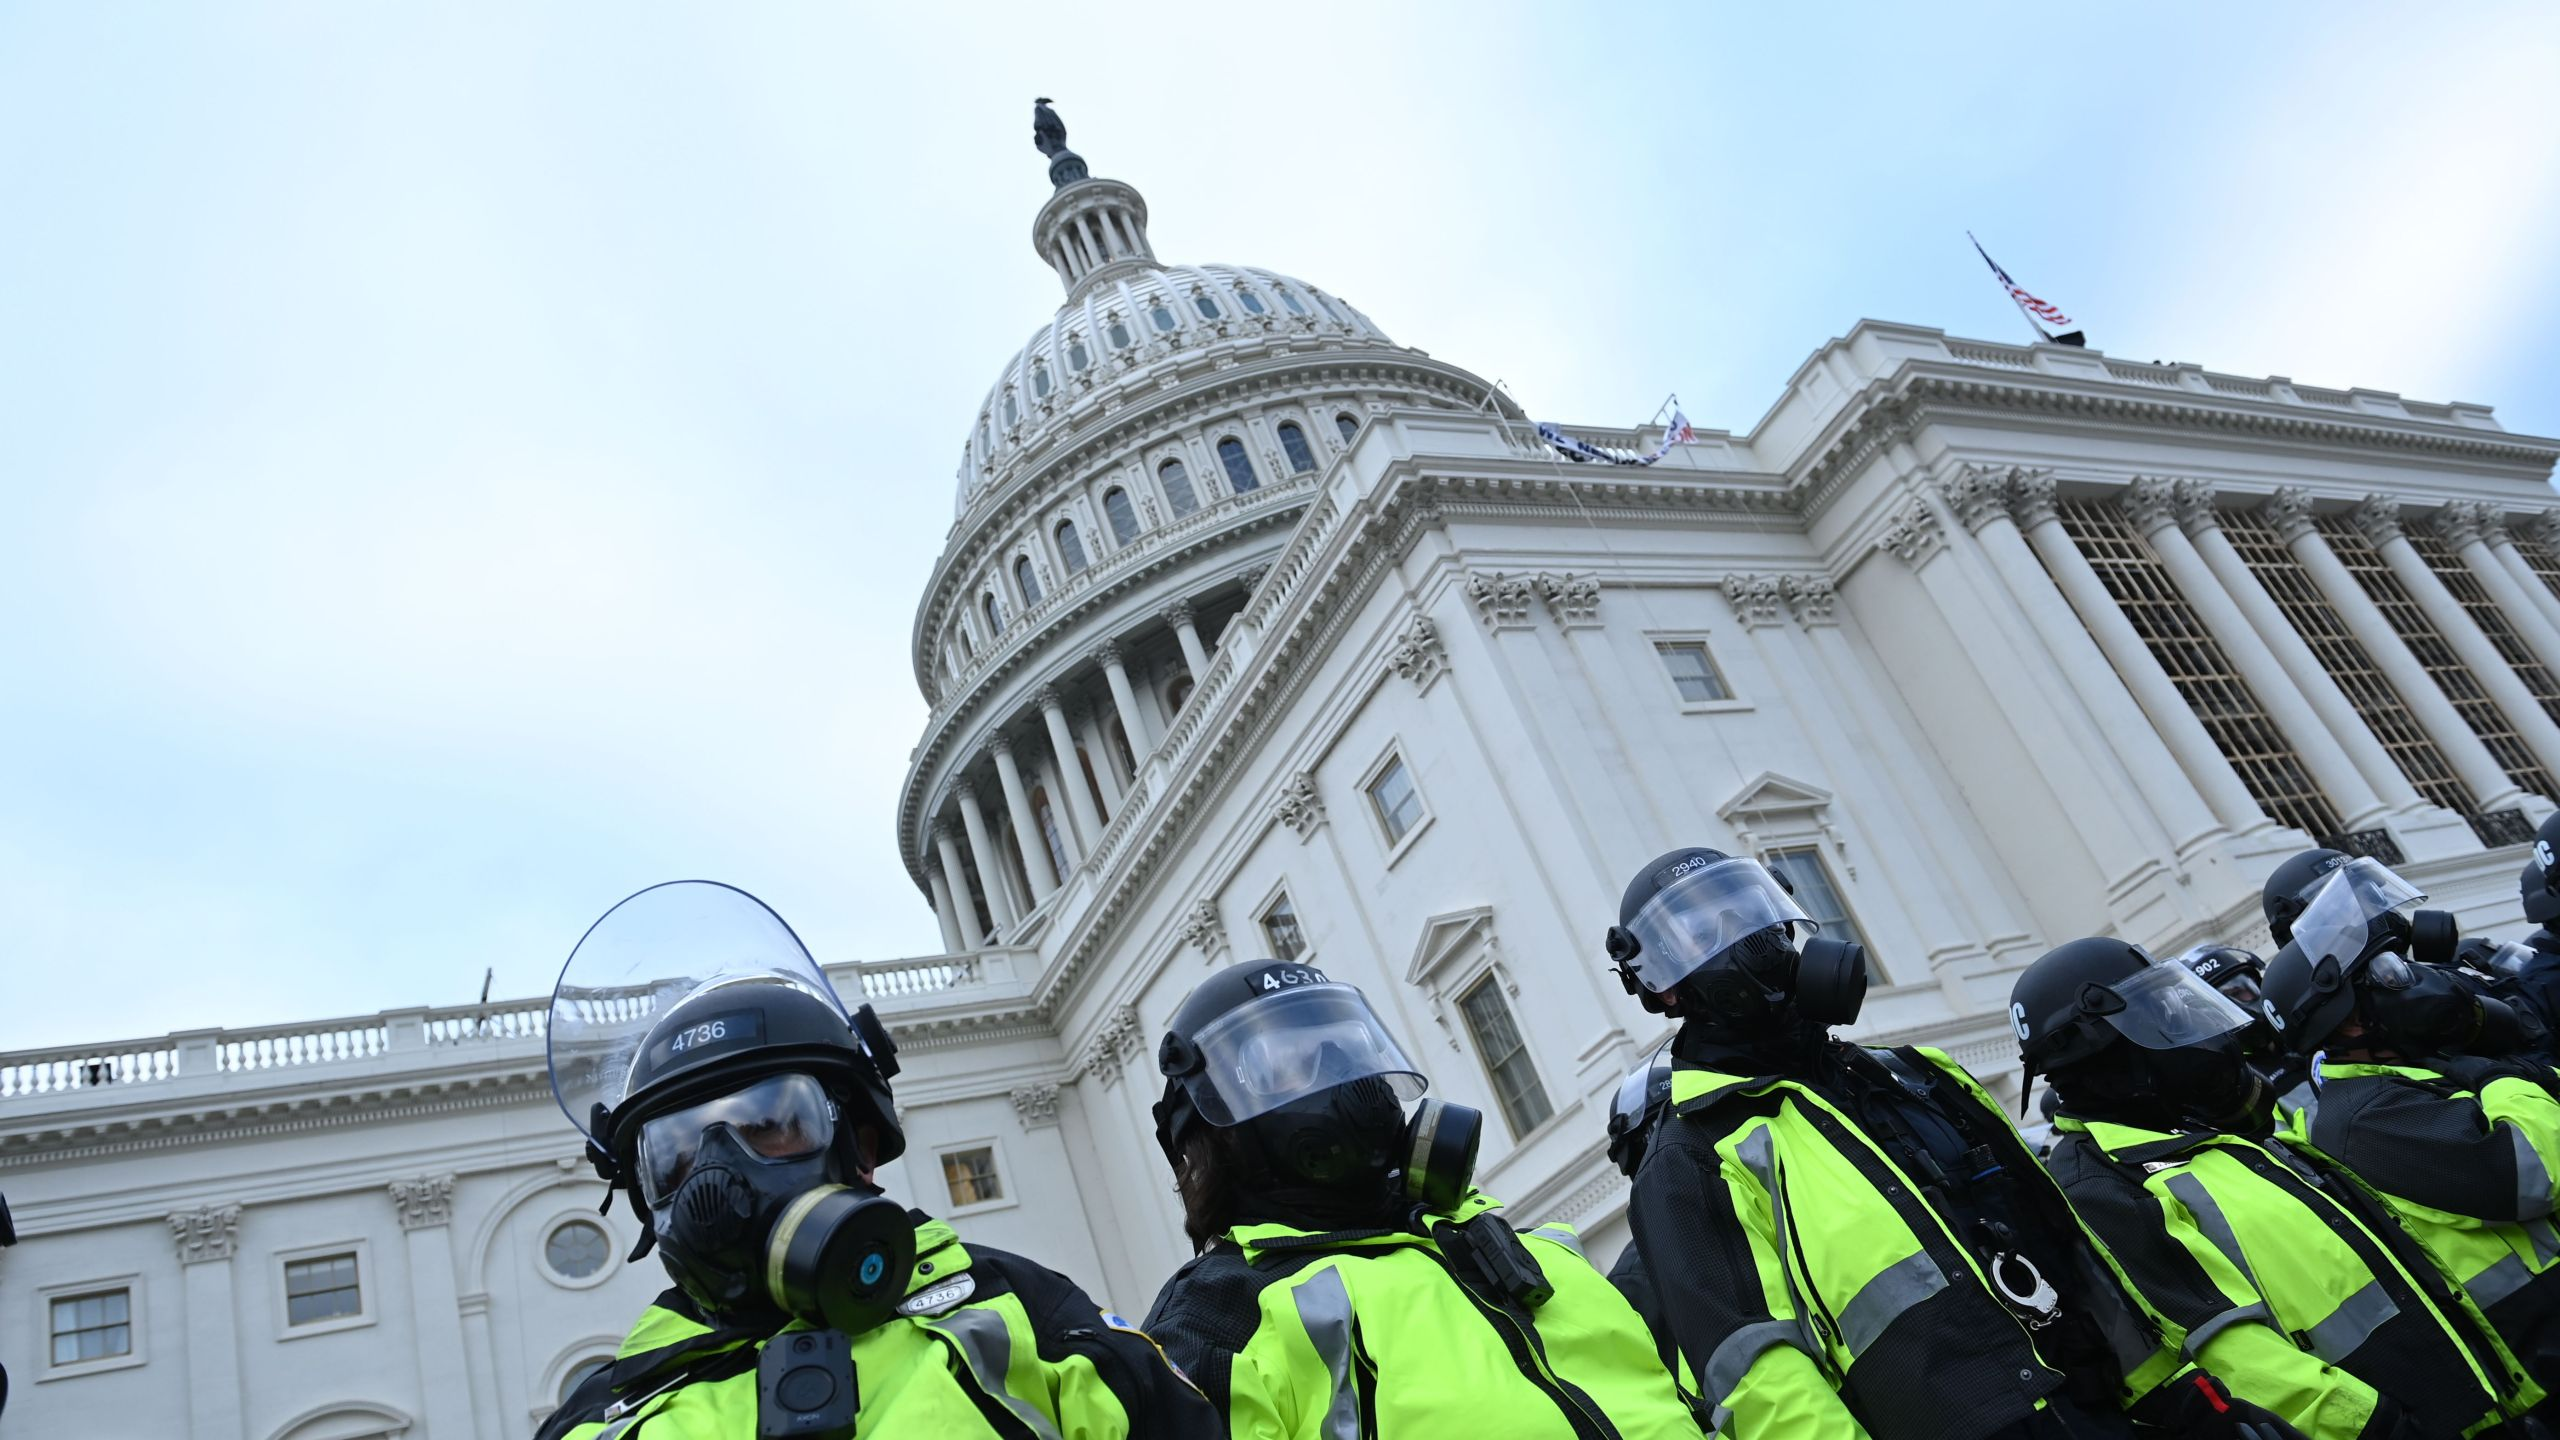 Police in neon yellow vests and shielded helmets stand outside Capitol building.